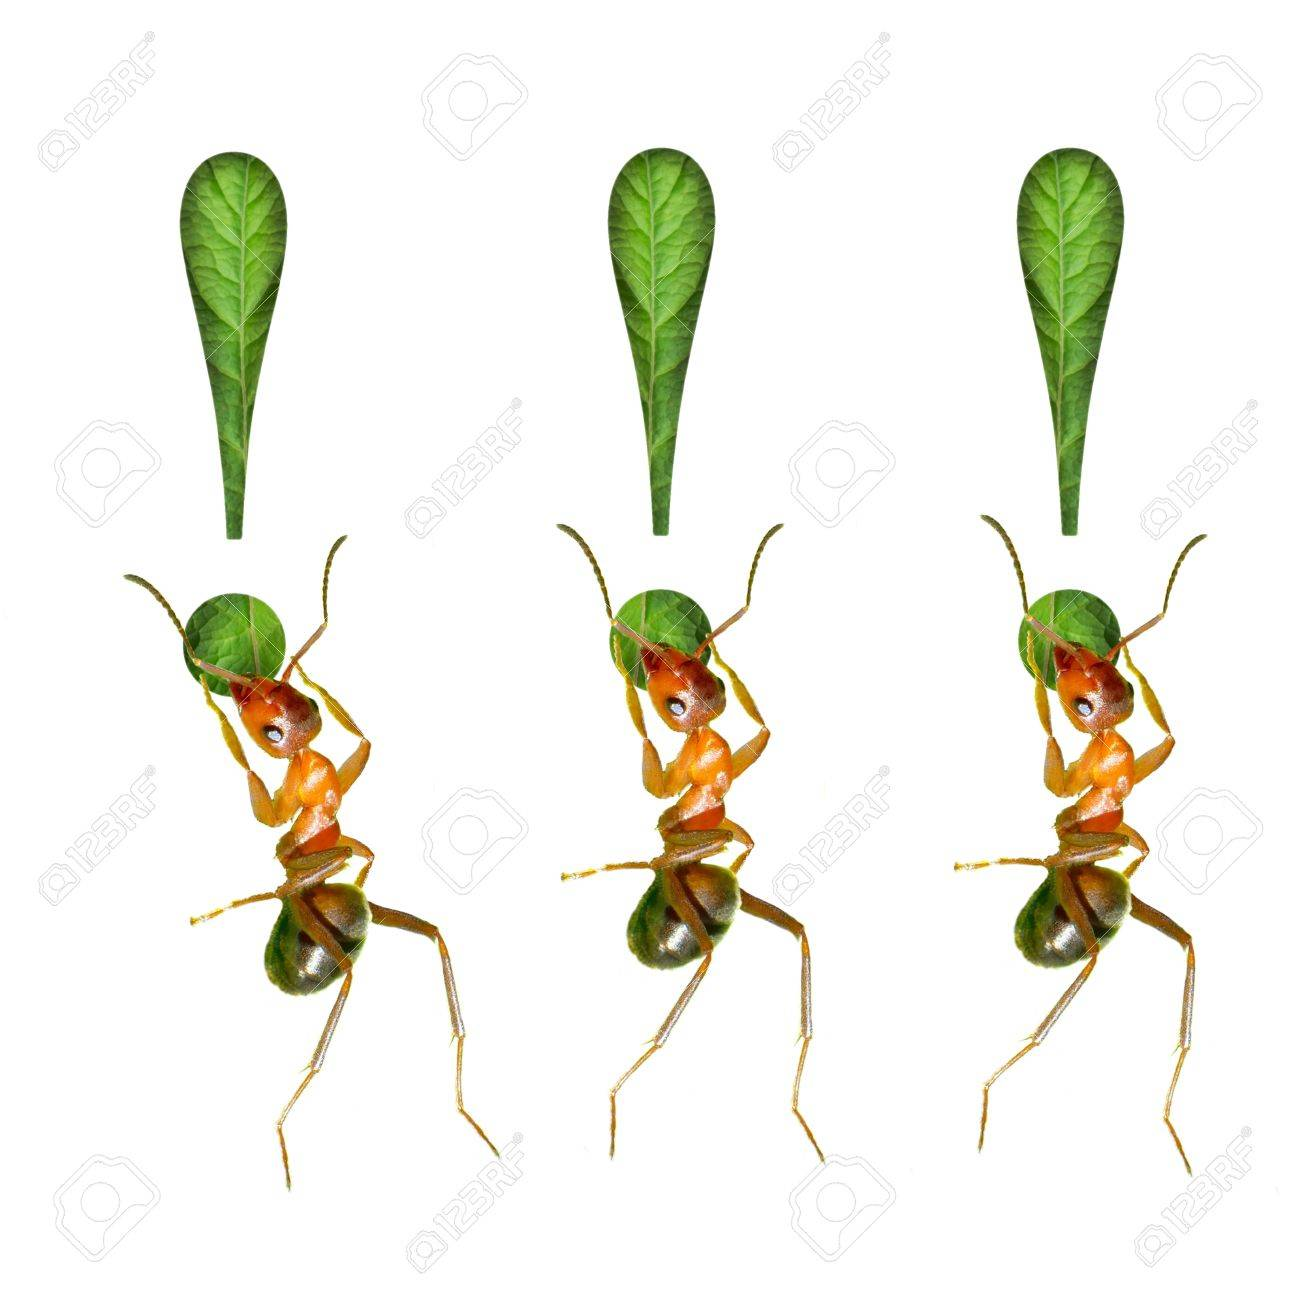 The ant and the exclamation mark Stock Photo - 16731973